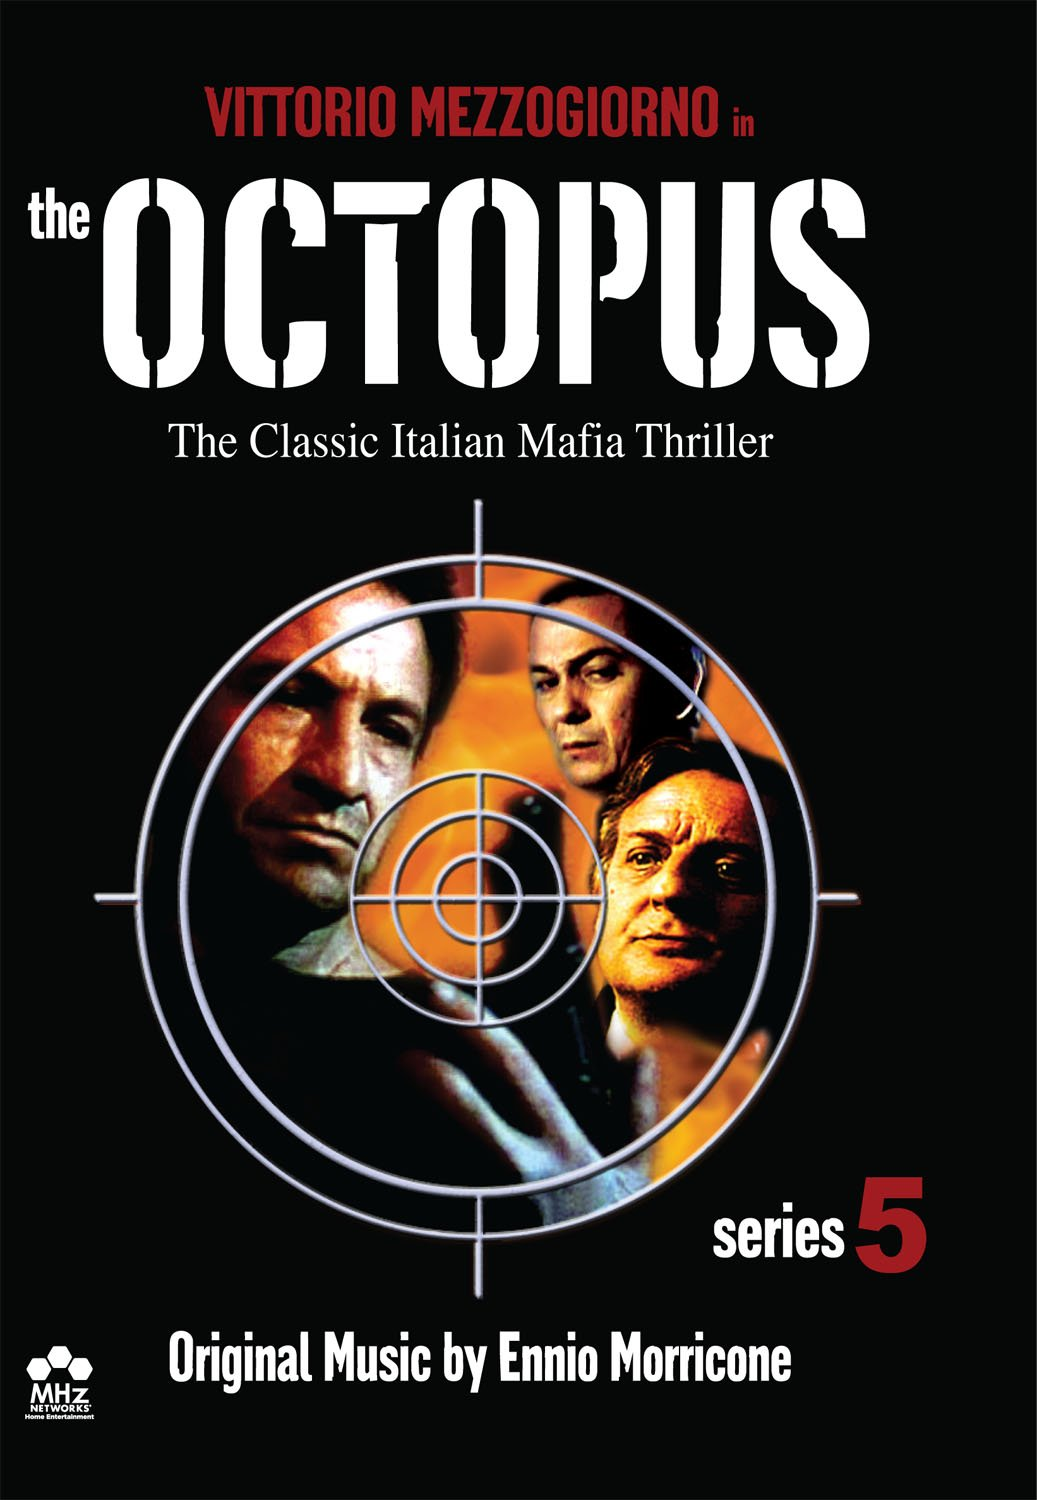 The Octopus: Series 5